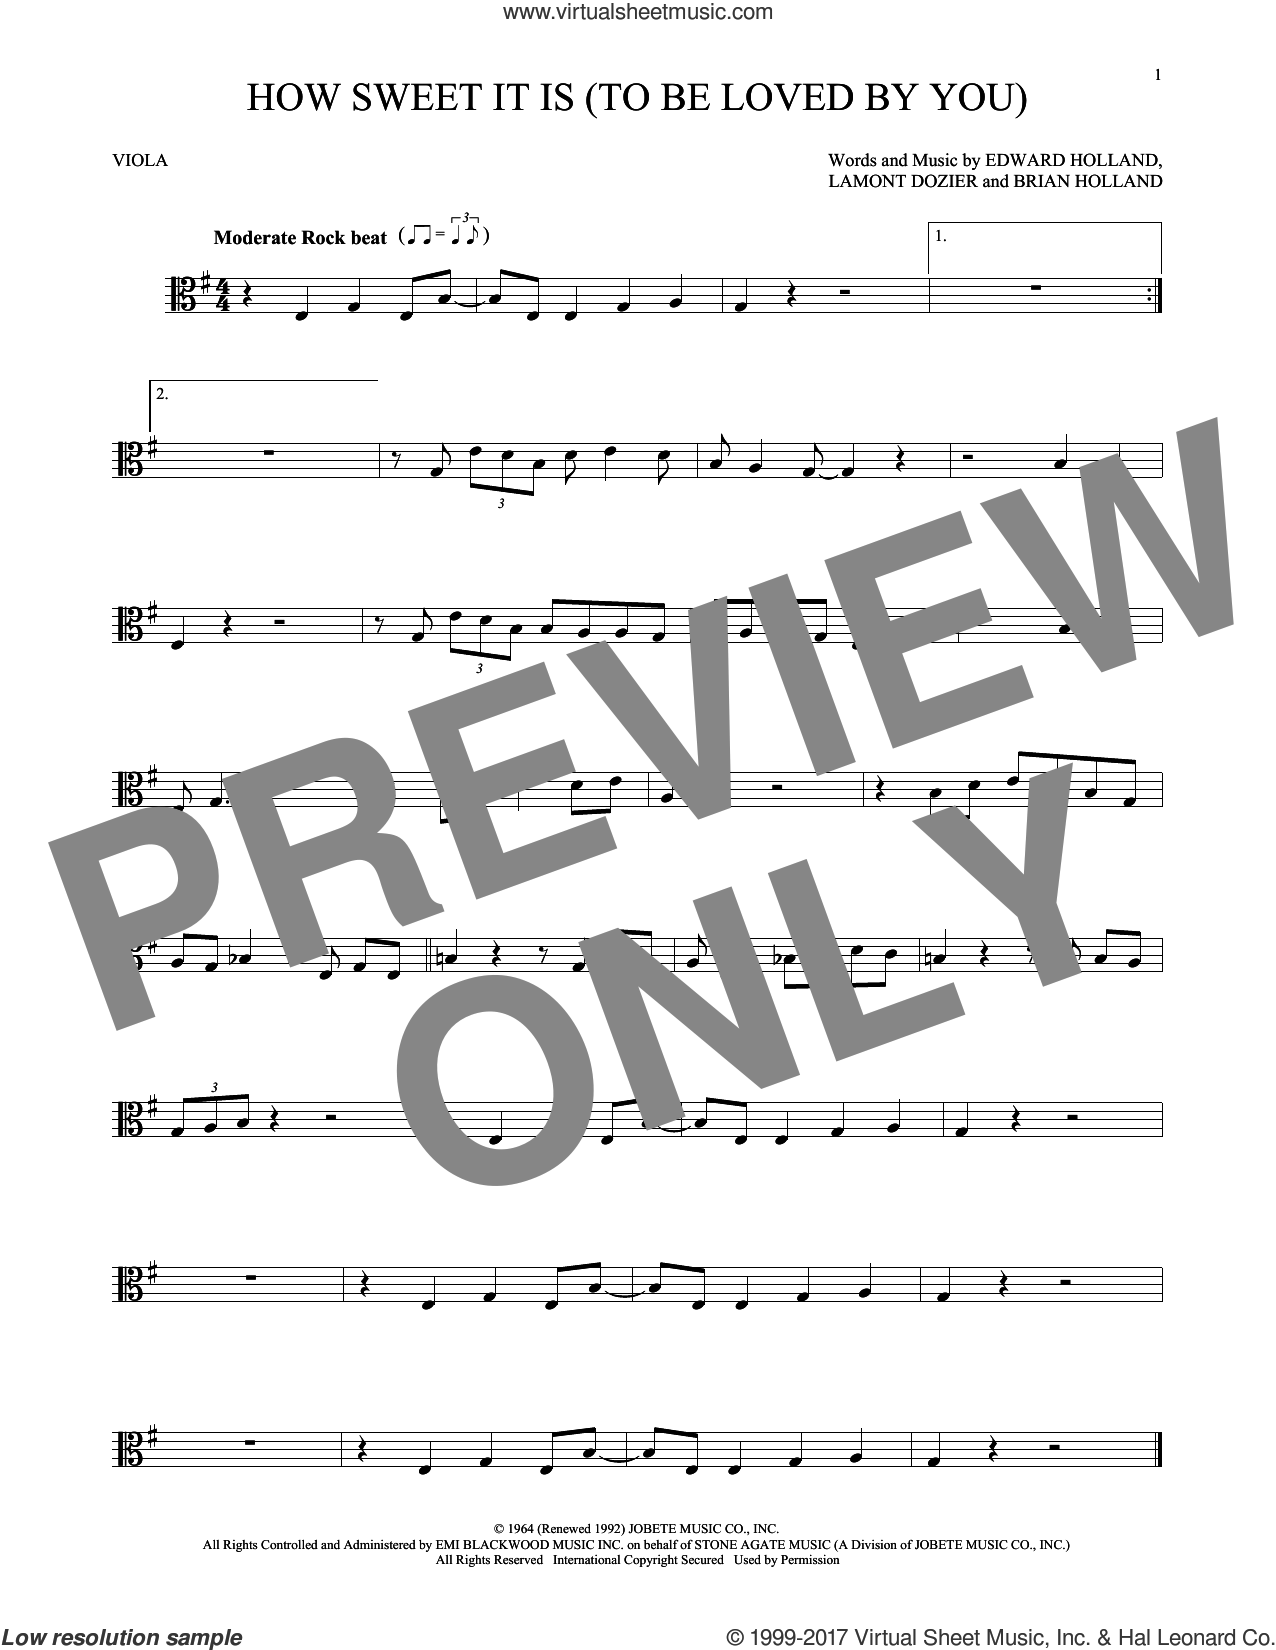 How Sweet It Is (To Be Loved By You) sheet music for viola solo by James Taylor, Marvin Gaye, Brian Holland, Eddie Holland and Lamont Dozier, intermediate skill level